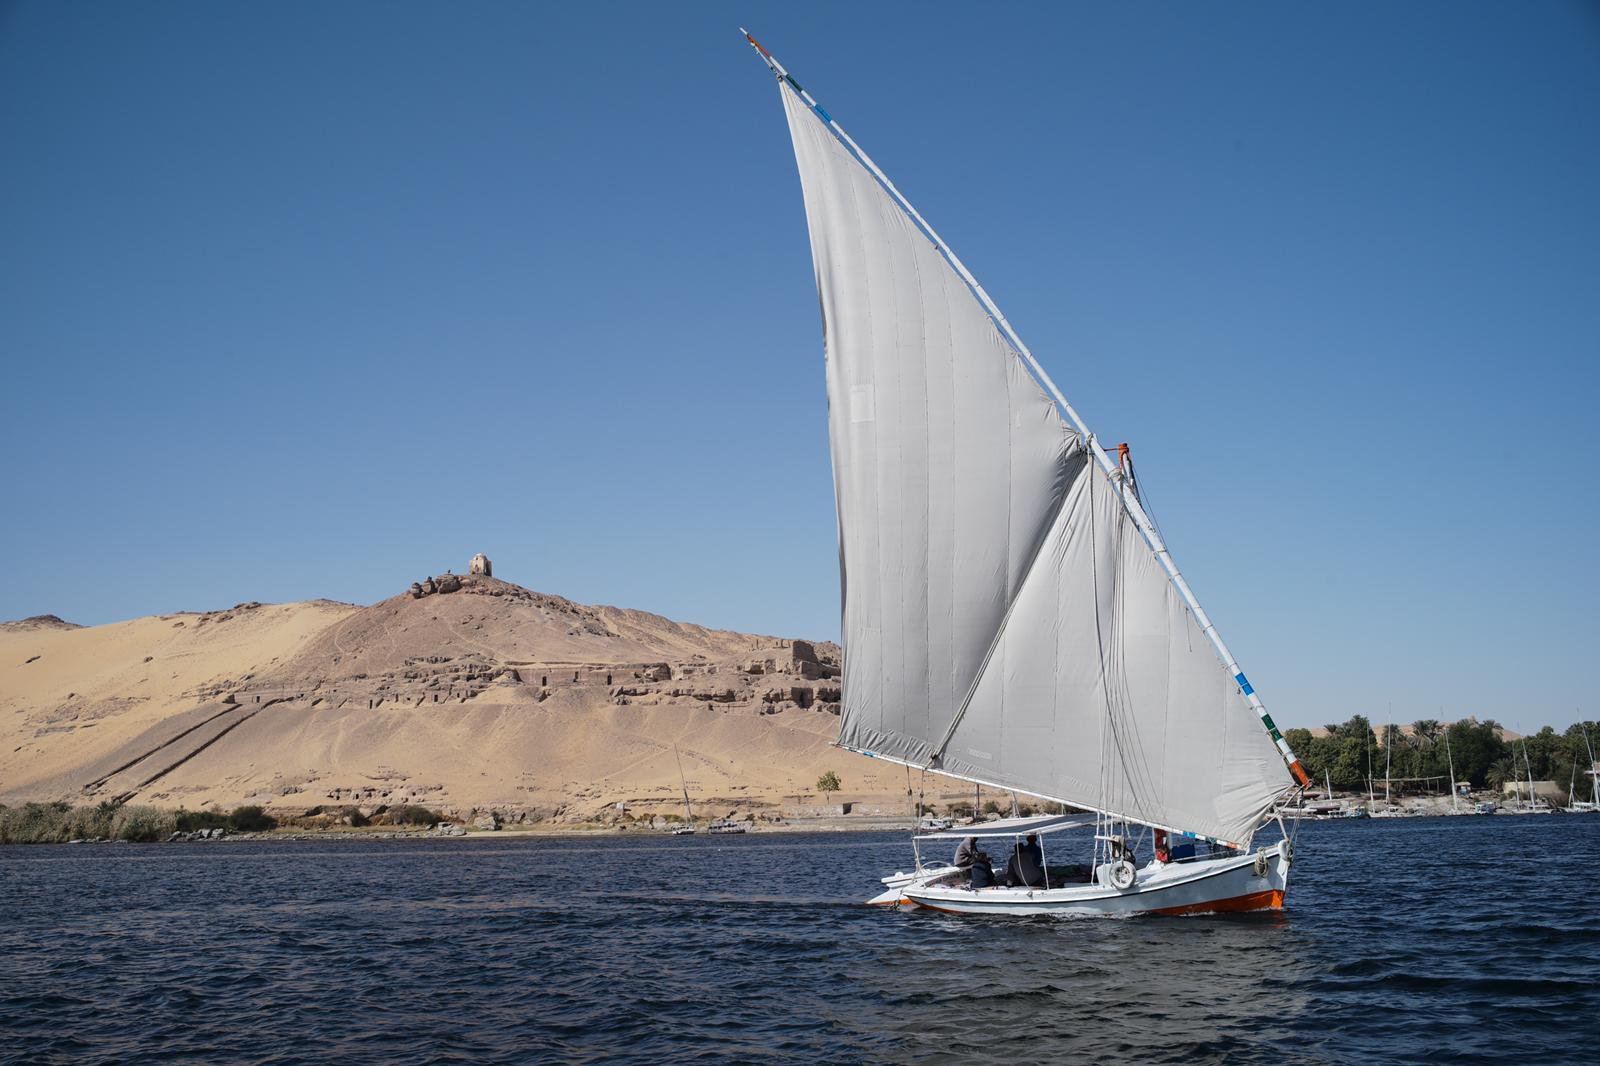 egypt tours 8 days